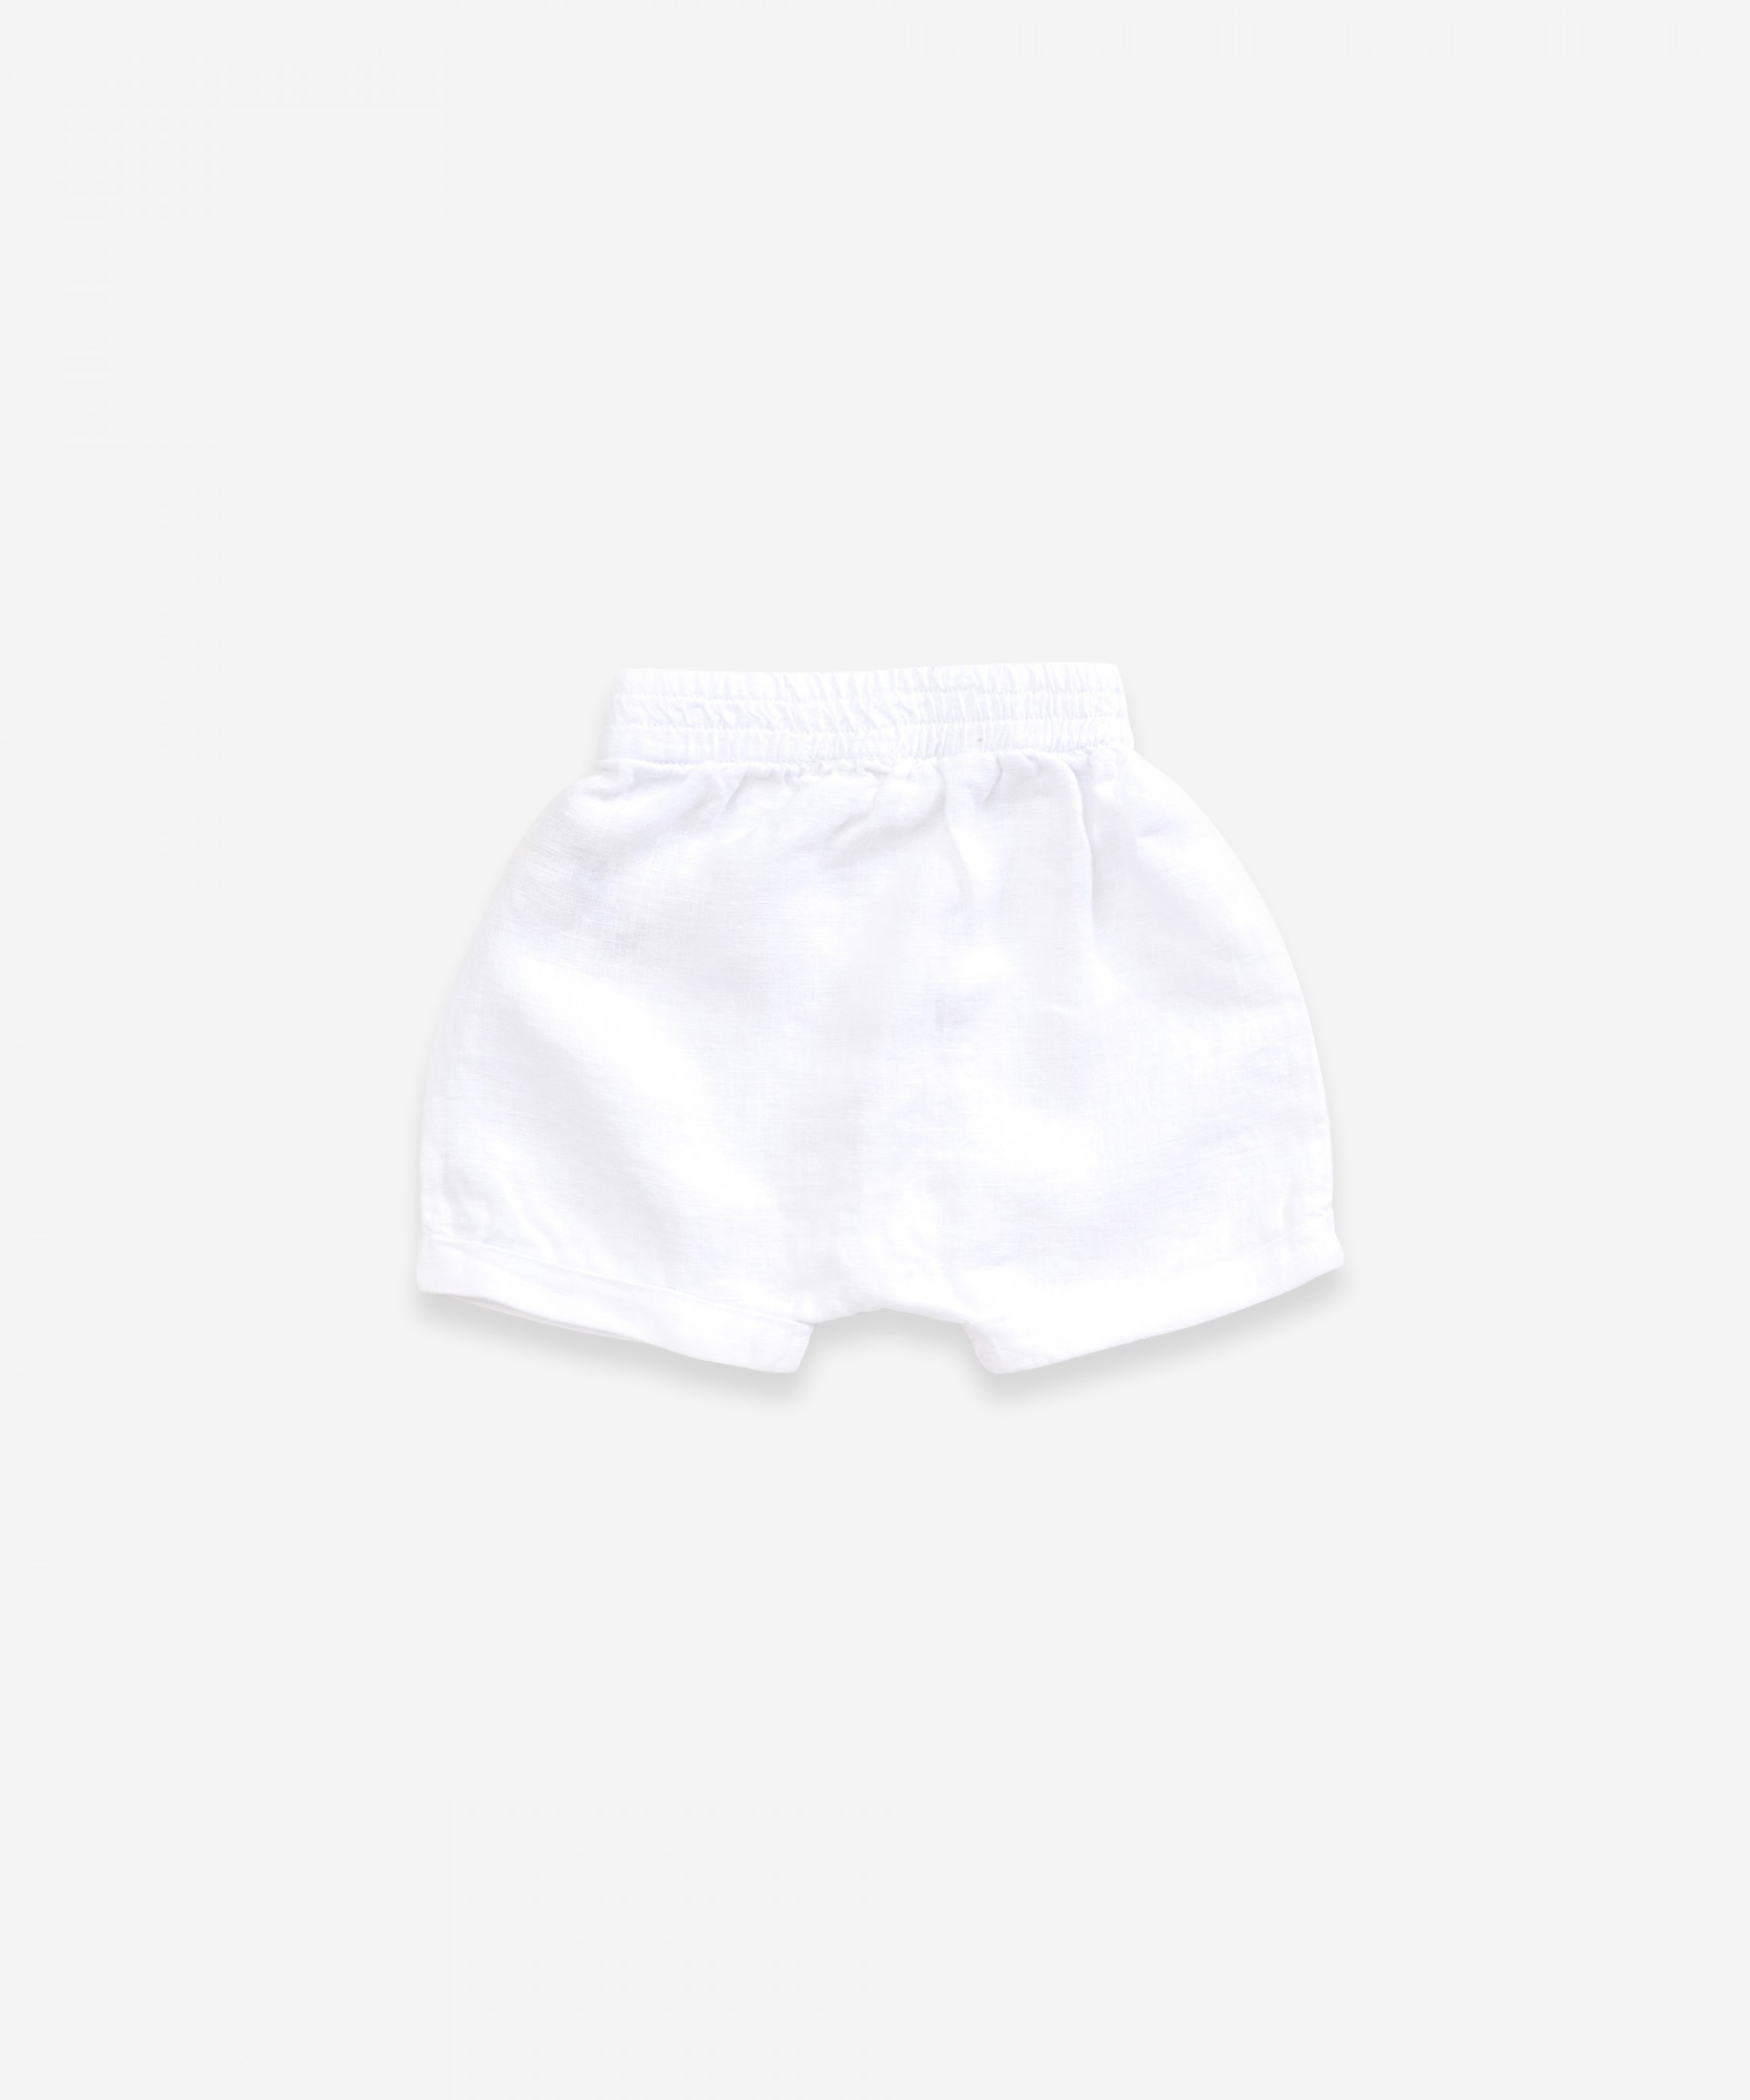 Linen shorts with buttons | Weaving